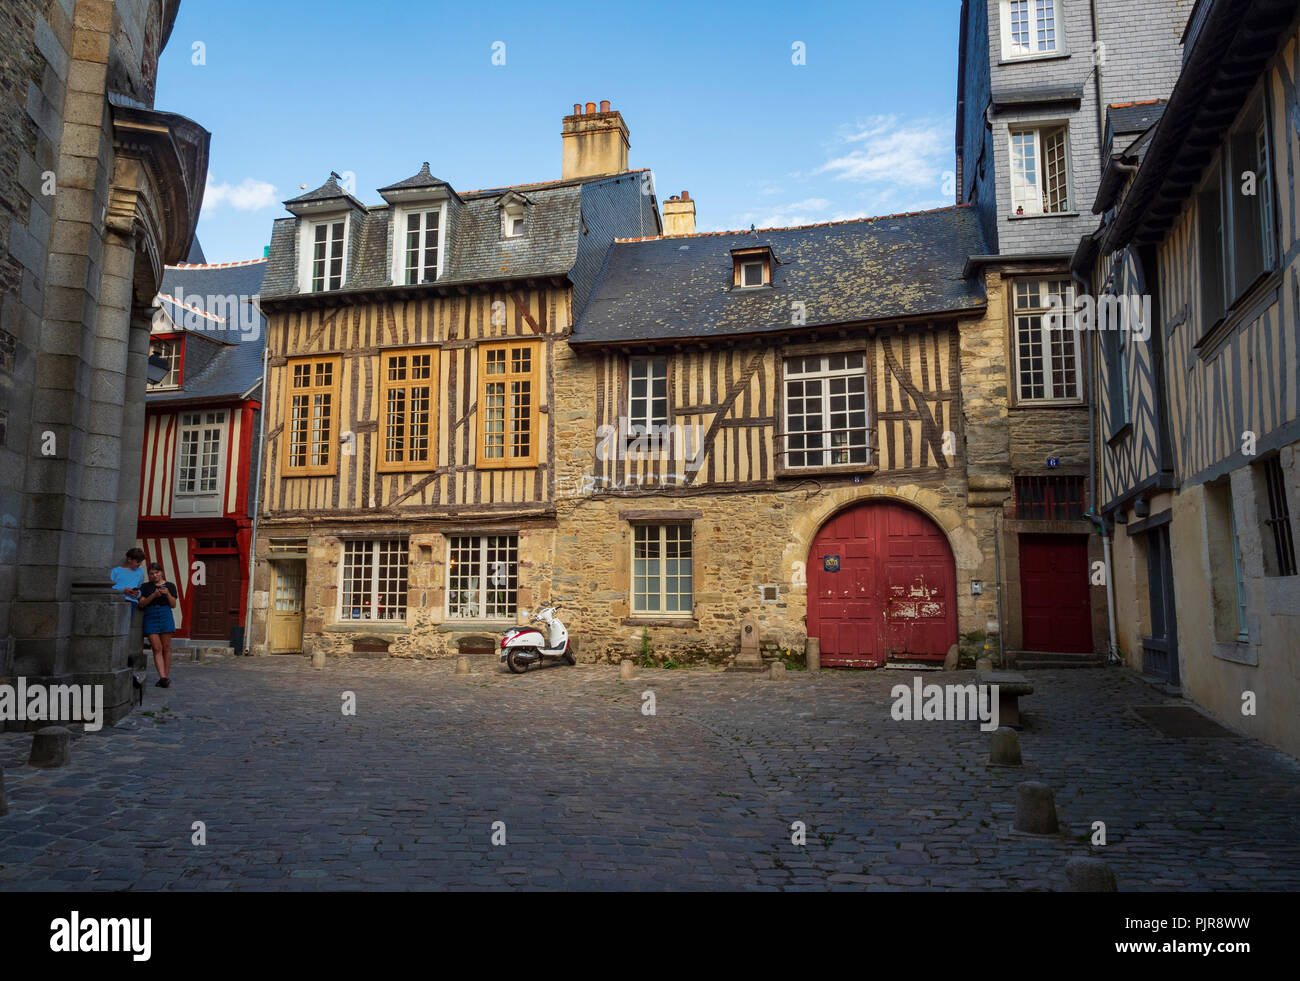 Half-timbered houses and cobbled streets, old Rennes, France. - Stock Image